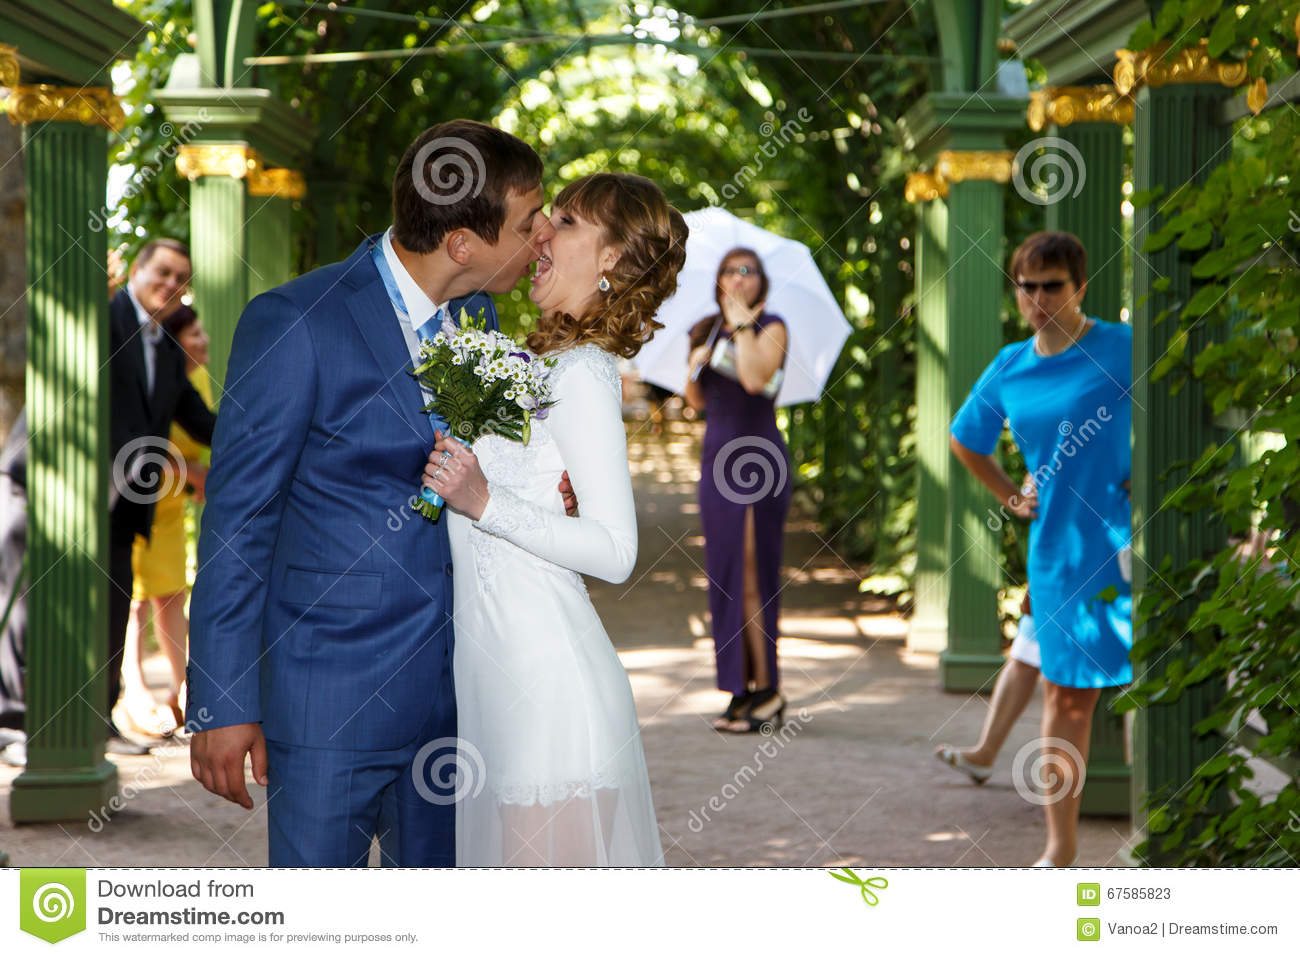 Funny groom kissing bride in wedding dress under the arch stock image image 67585823 - Photo de mariage drole ...